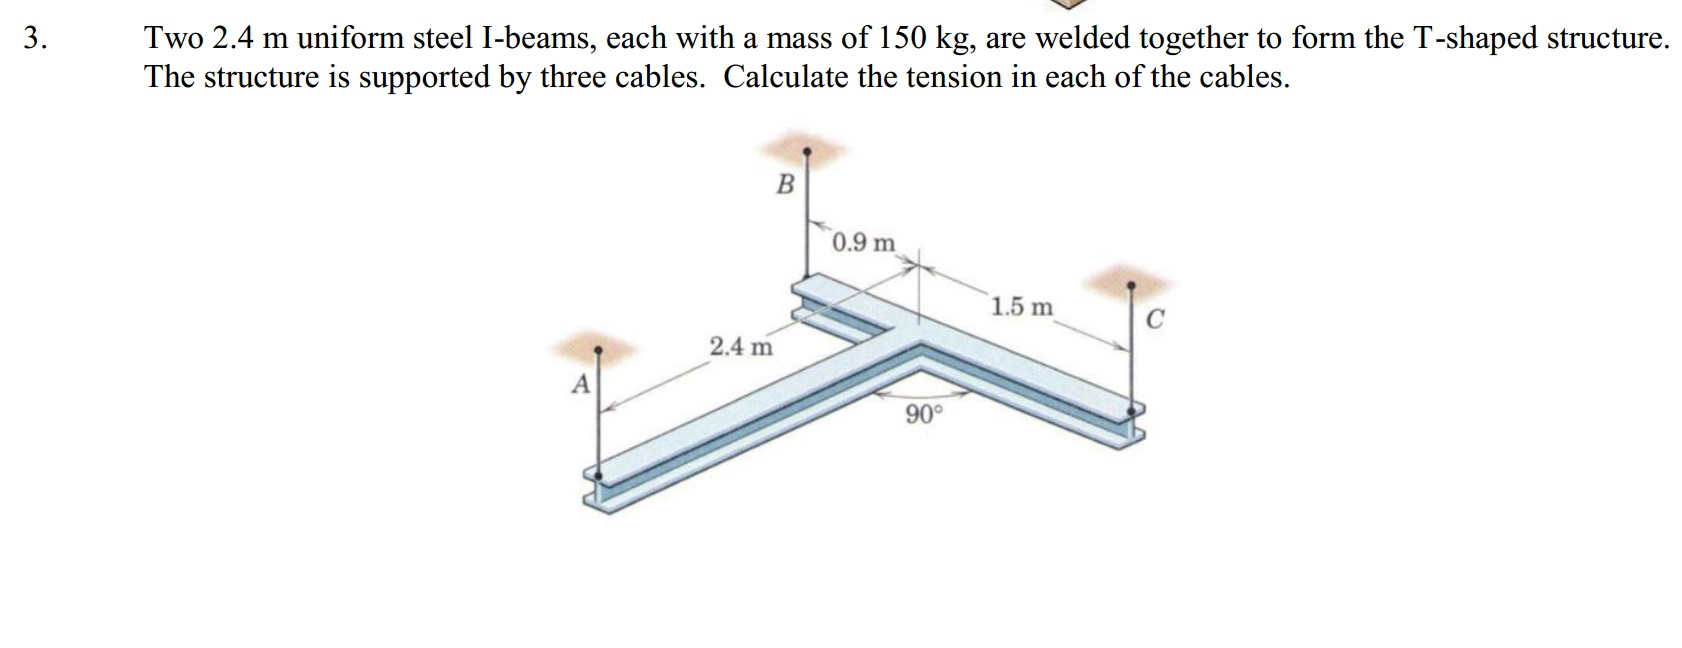 Two 2.4 m uniform steel I-beams, each with a mass